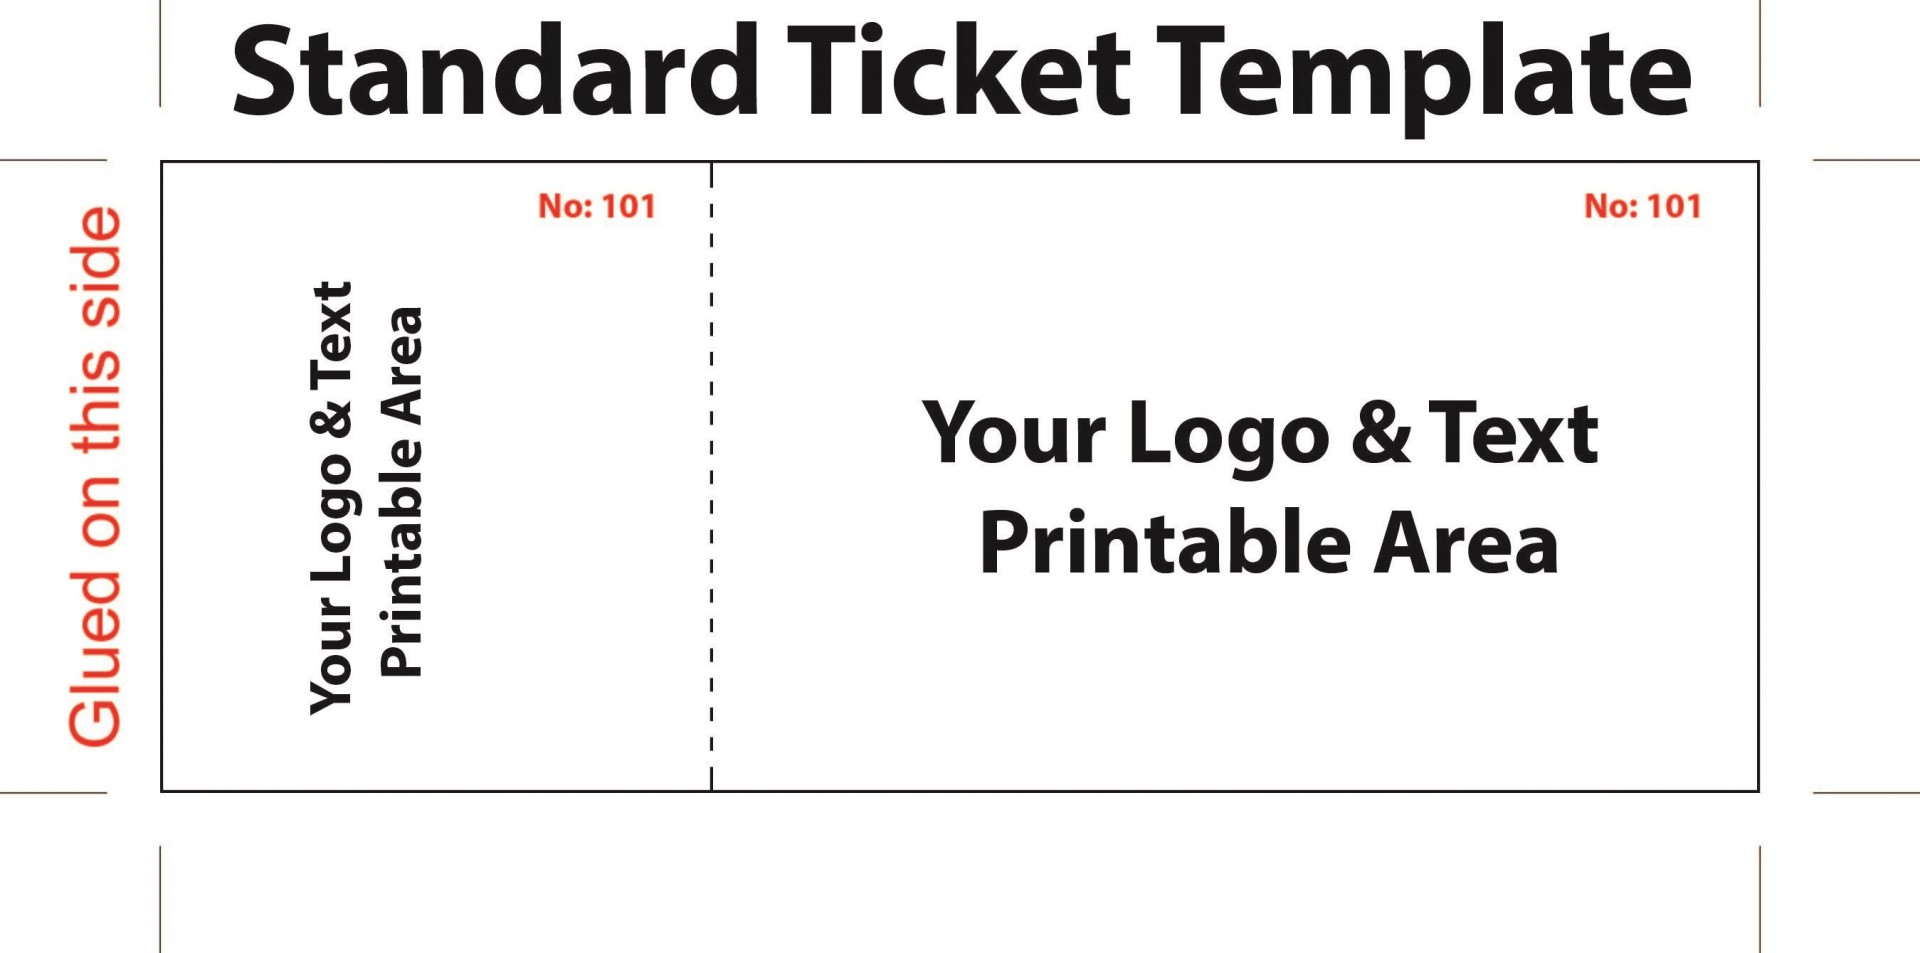 007 Top Editable Ticket Template Free Sample  Word Airline Raffle1920